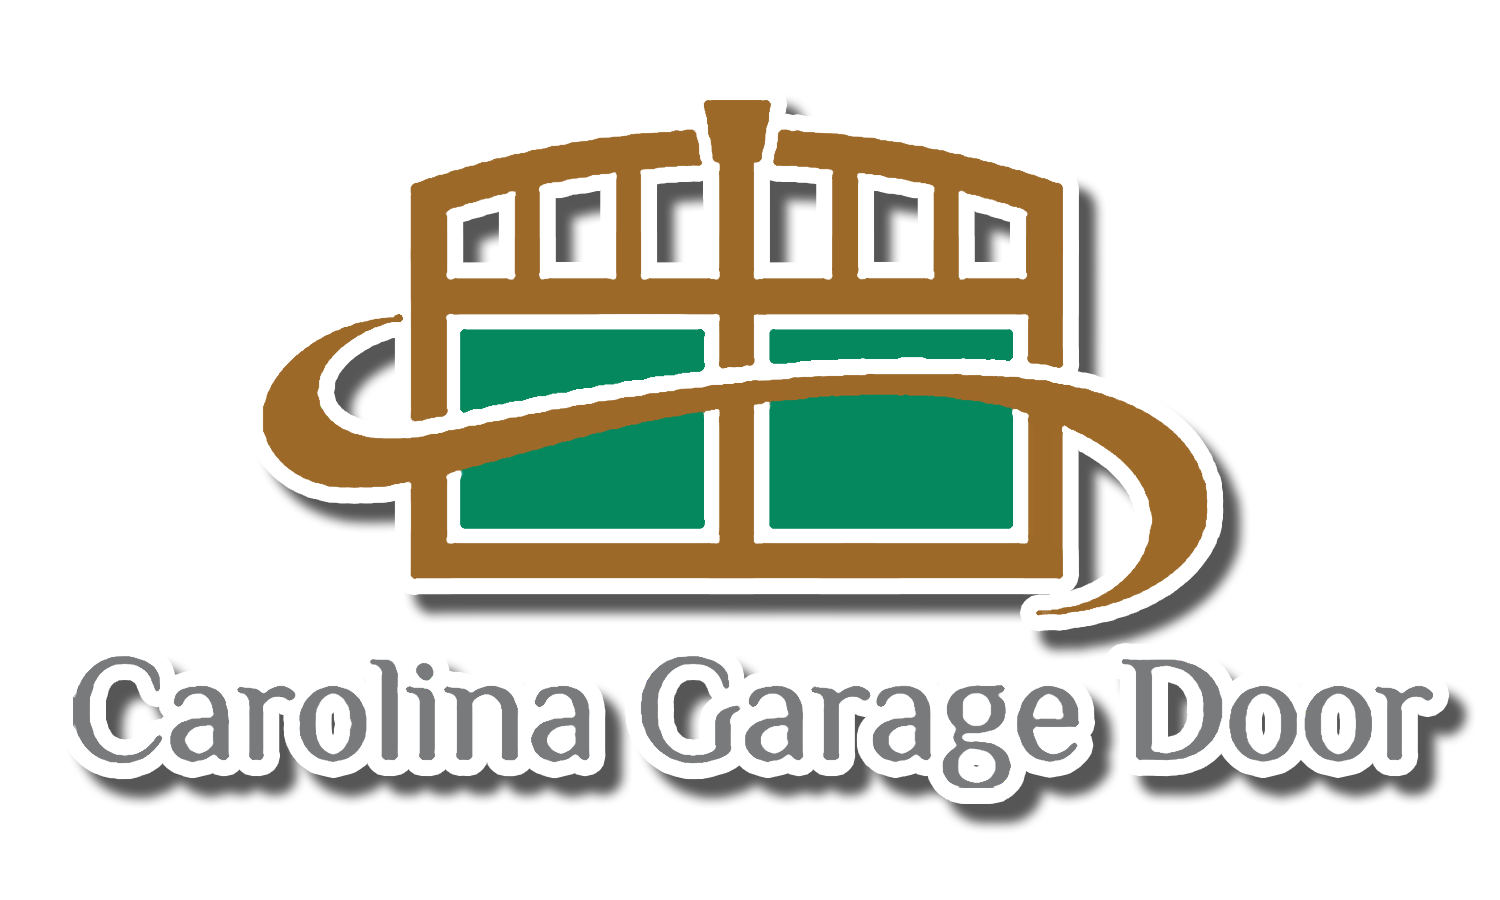 Awesome Carolina Garage Door Logo 1.png